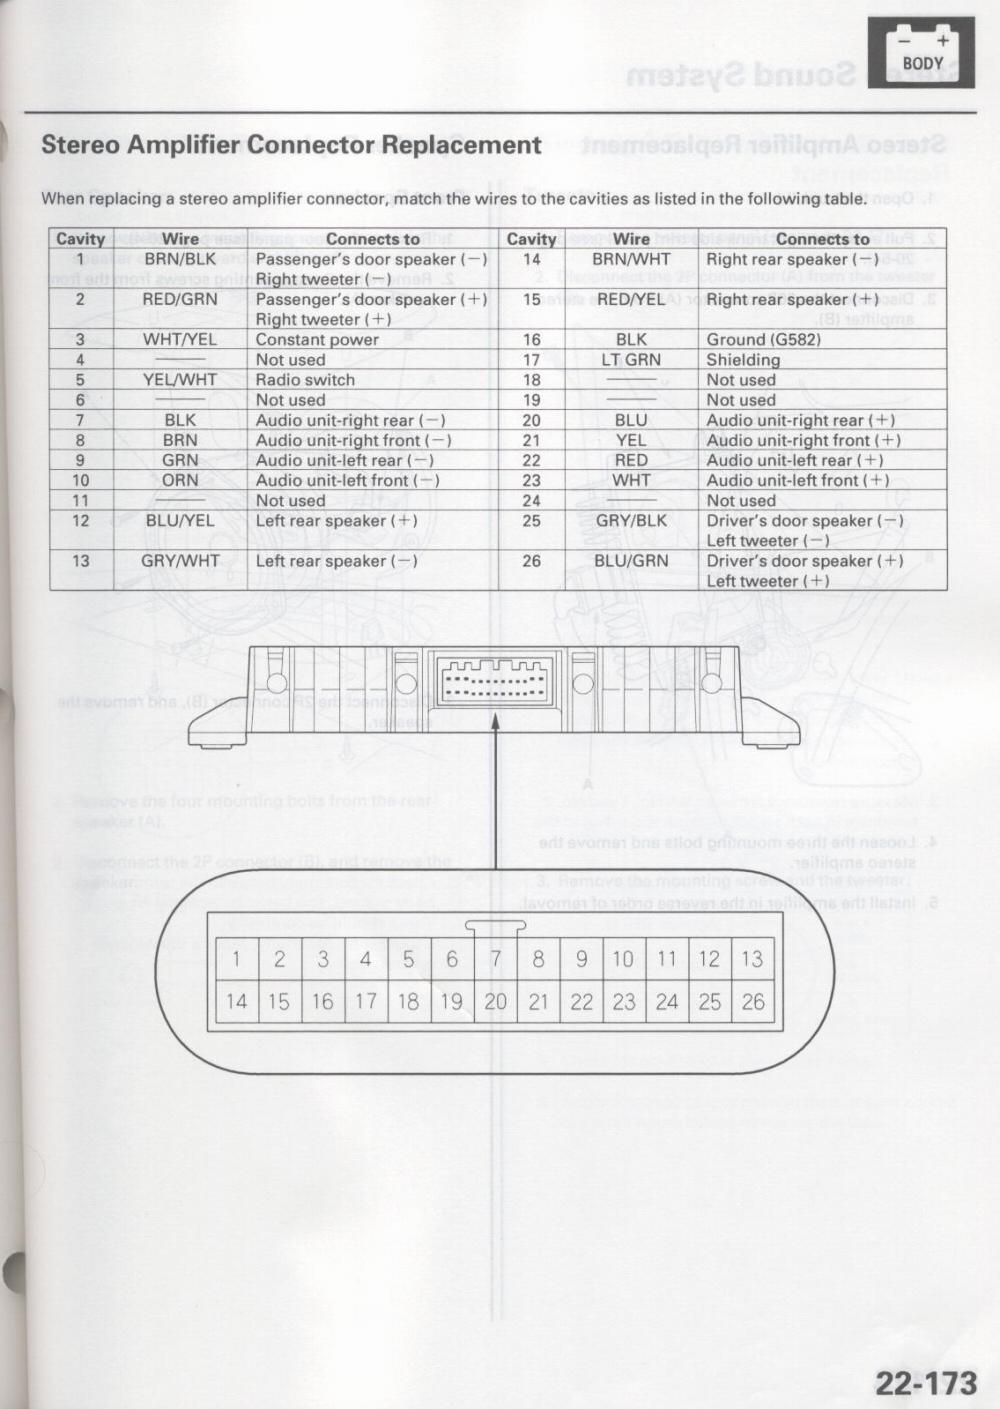 Acura 2002 TL car stereo amplifier wiring diagram harness car radio stereo audio wiring diagram autoradio connector wire Pioneer Head Unit Wiring Diagram at cos-gaming.co